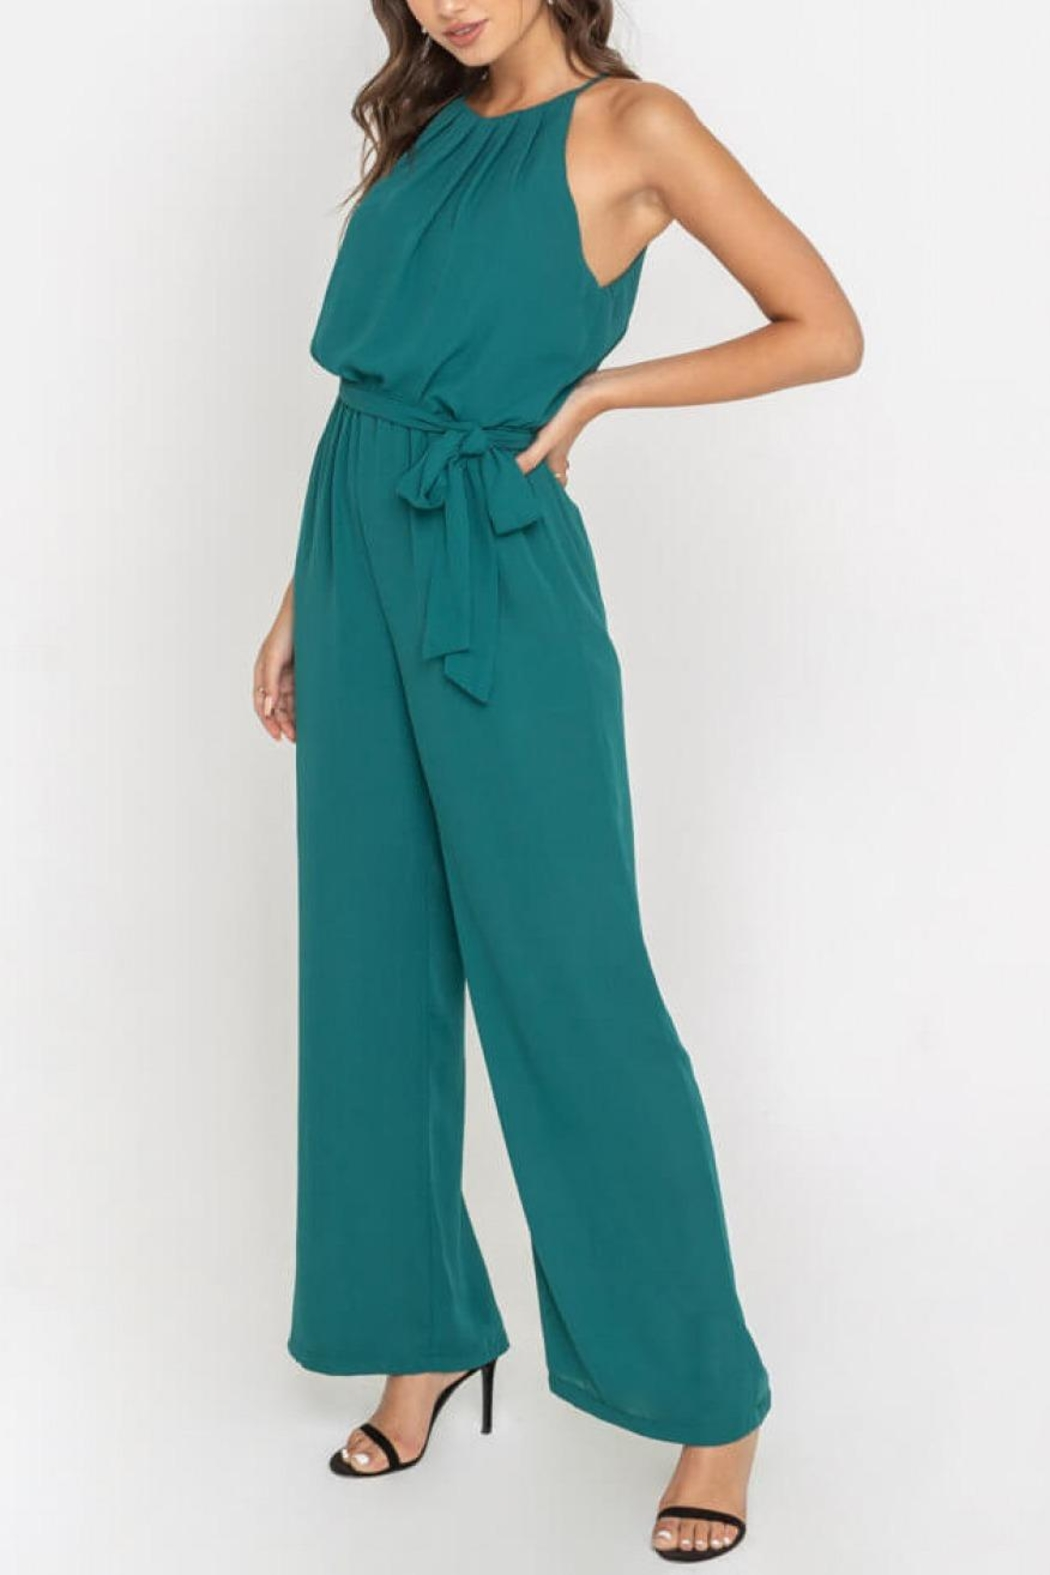 Lush Clothing  Teal Halter Jumpsuit - Main Image